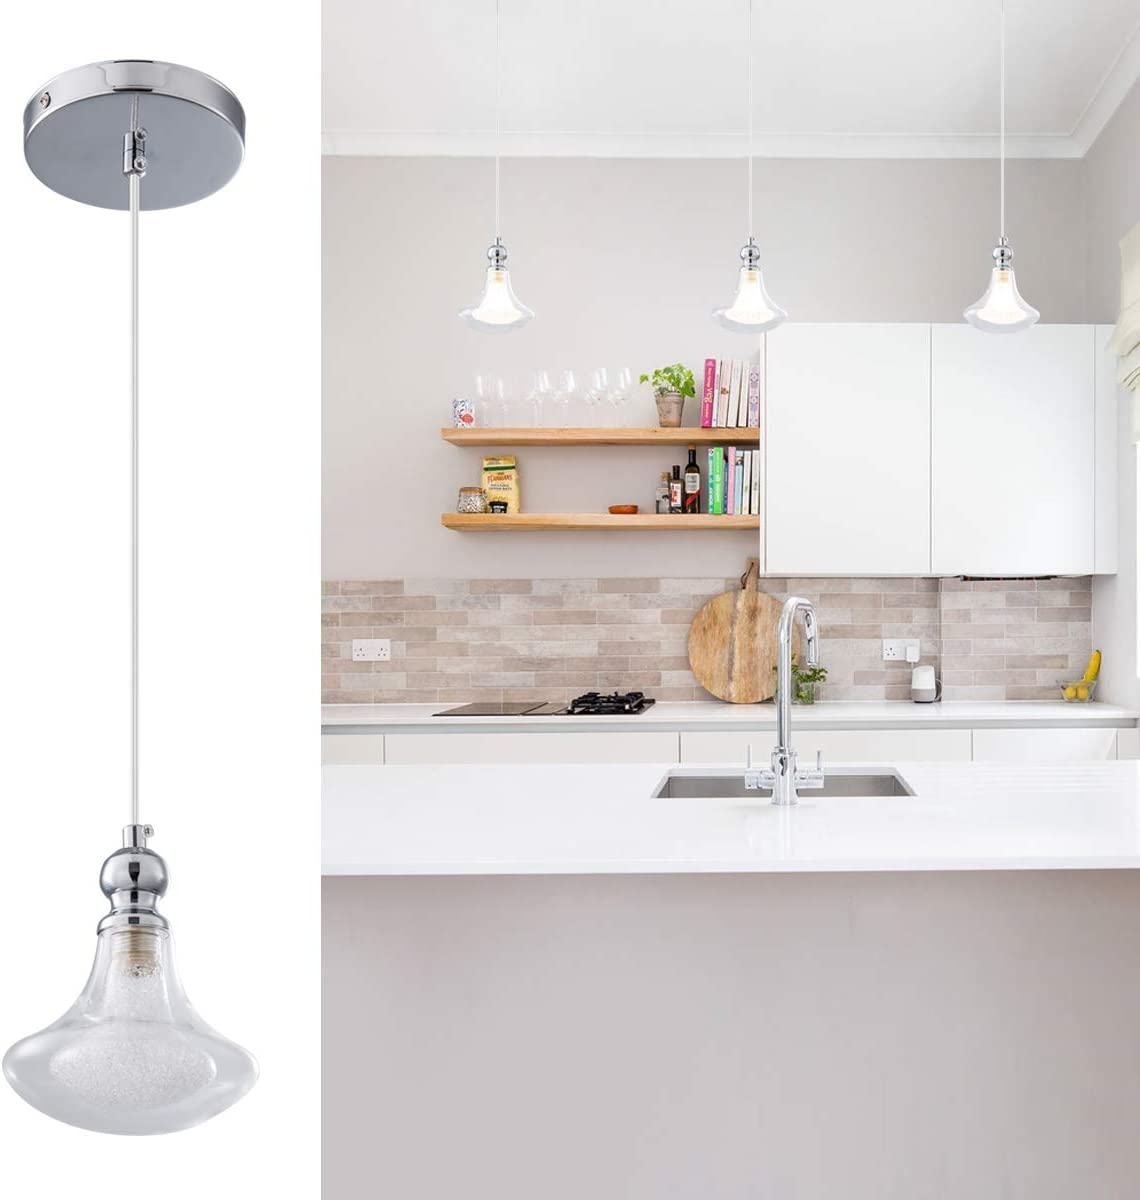 1 Light Pendant Light with Fancy Glass Lampshade Chrome Finish Lighting Fixtures Ceiling Adjustable, Modern Style, Hanging Light Fixture for Kitchen Island, Dining Room, Foyer, Entryway, Stairway